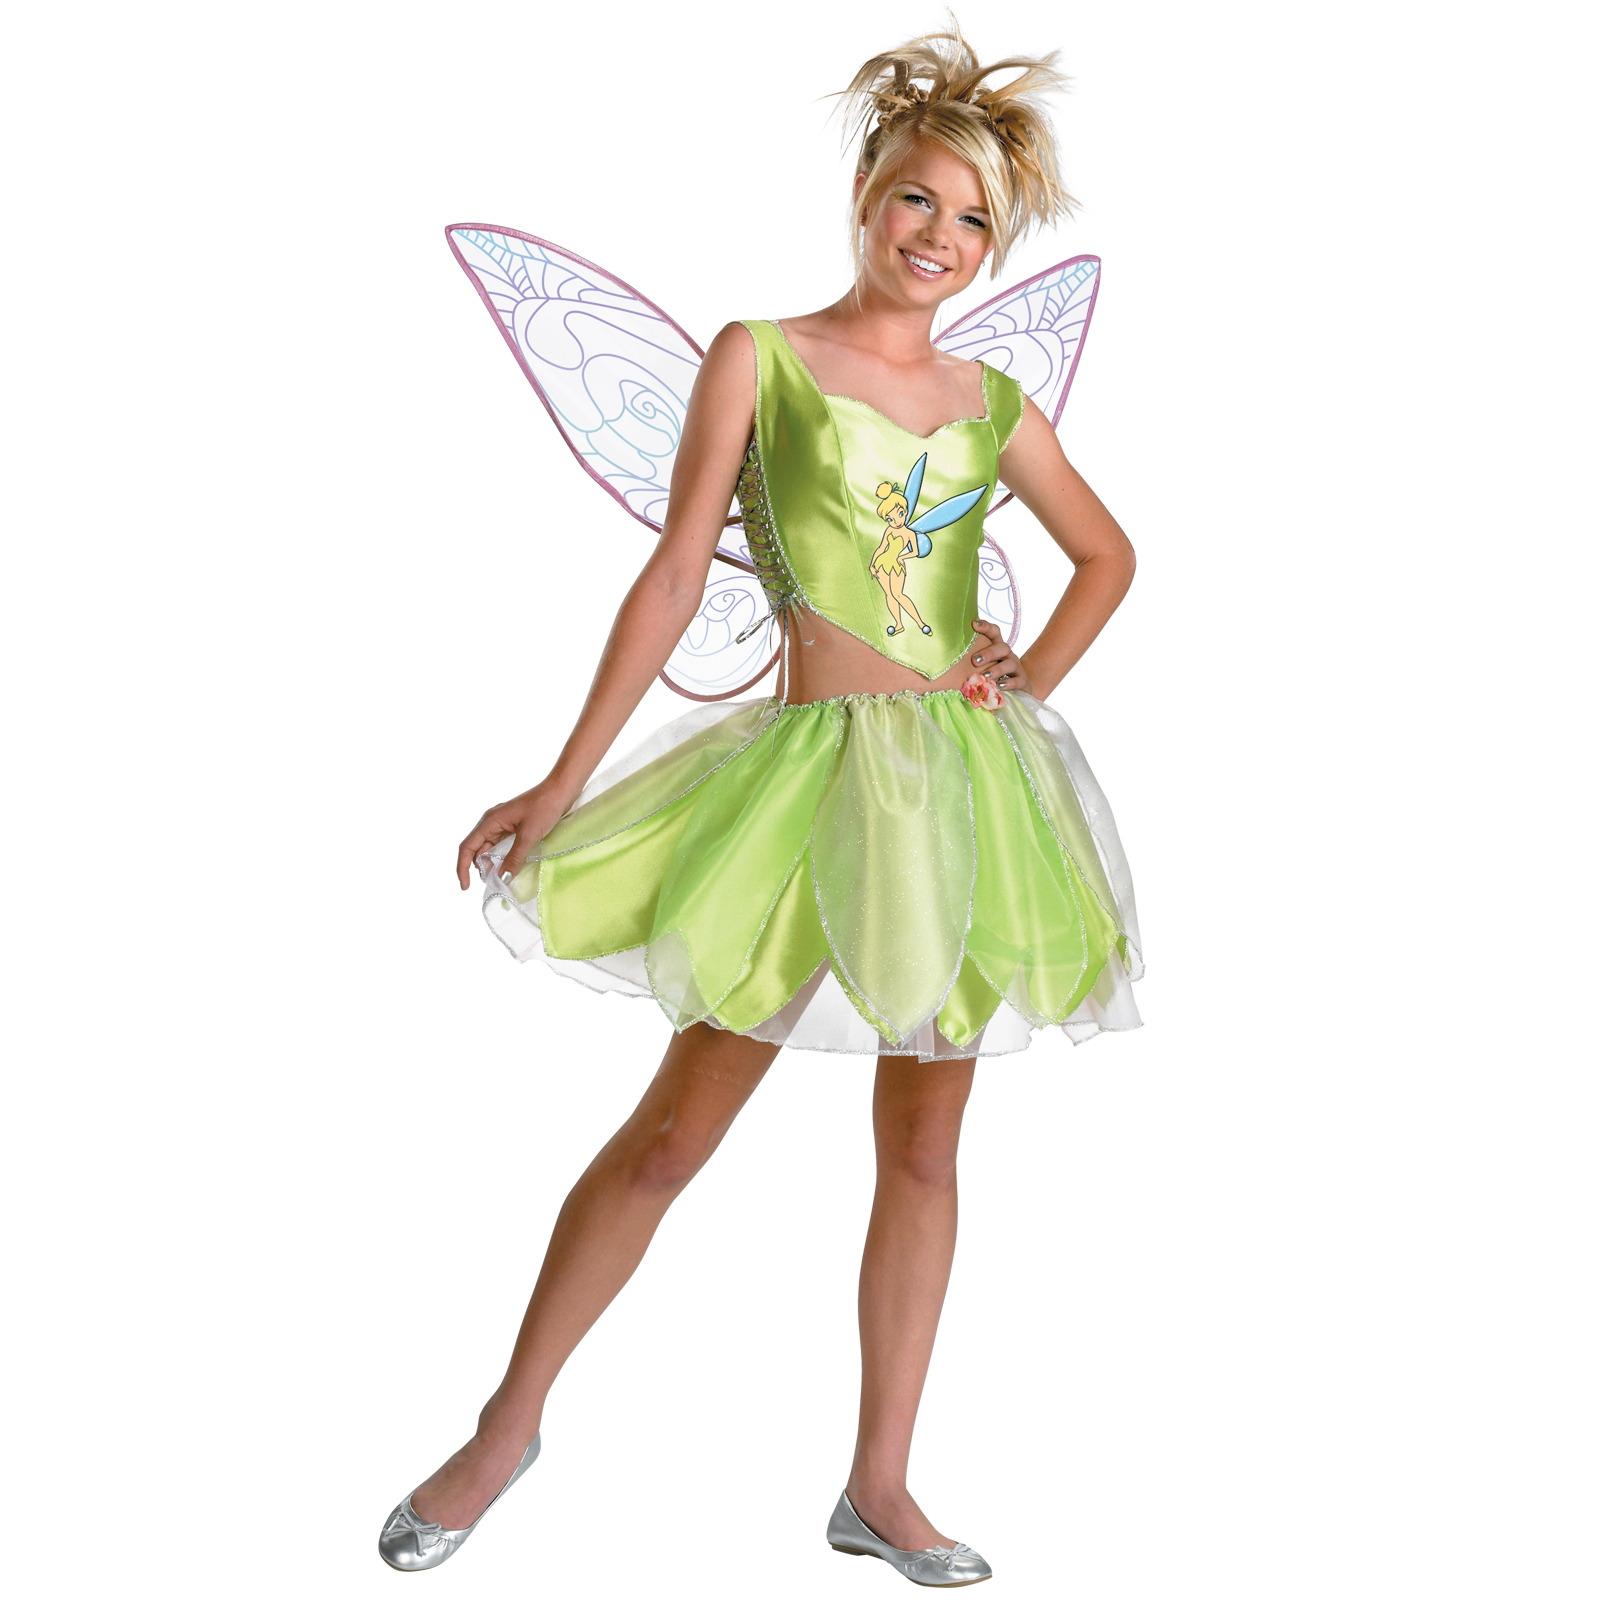 Tinkerbell costume sex pics sexy tube